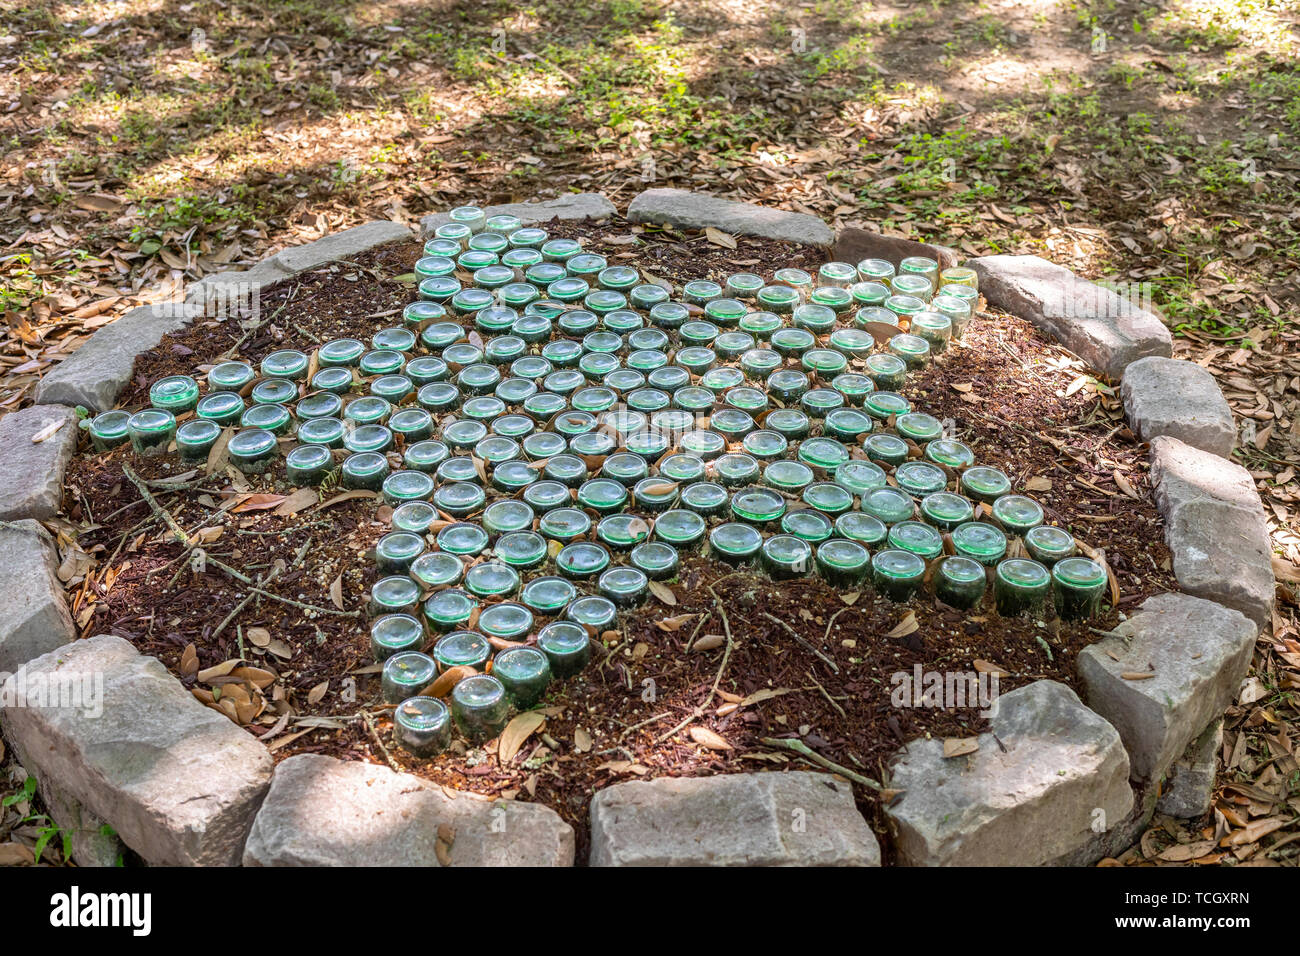 Carville, Louisiana - Old Coca-Cola bottles decorate the grounds of the National Hansen's Disease Museum. Once a facility where people with Hansen's D - Stock Image